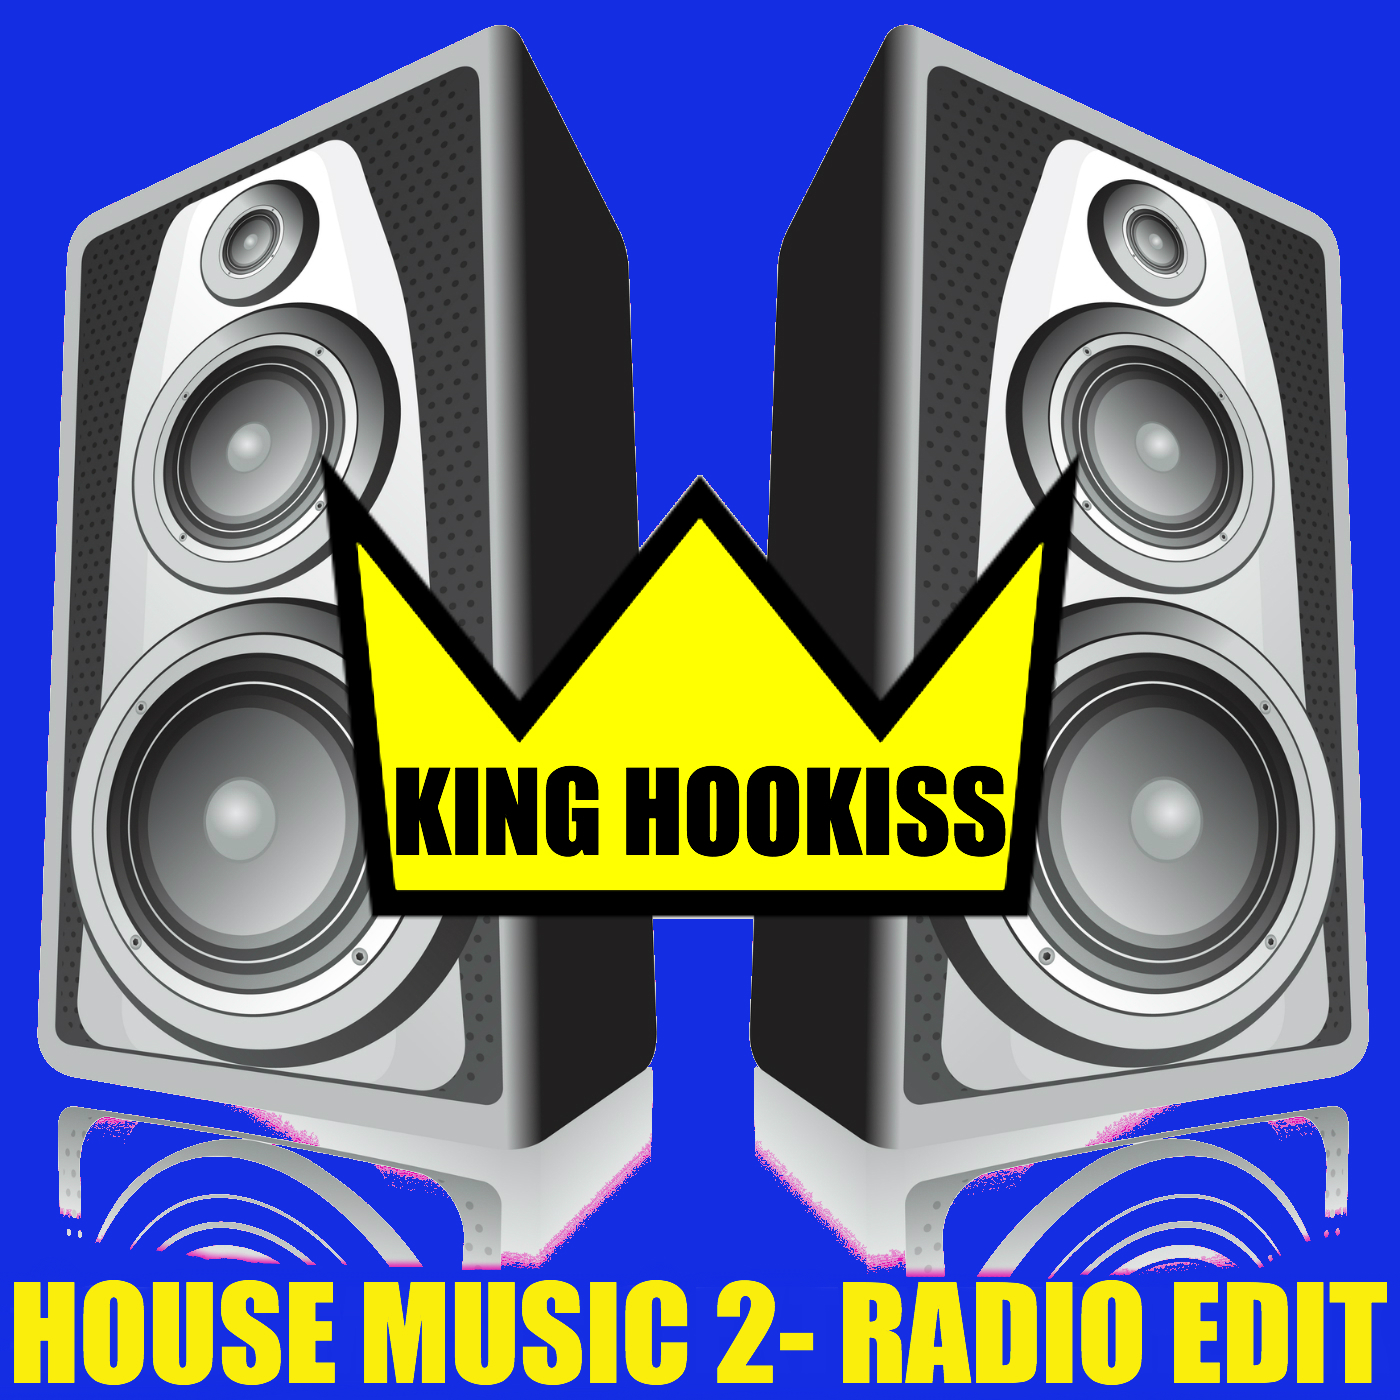 House music 2 radio edit by king hookiss hulkshare for House music radio